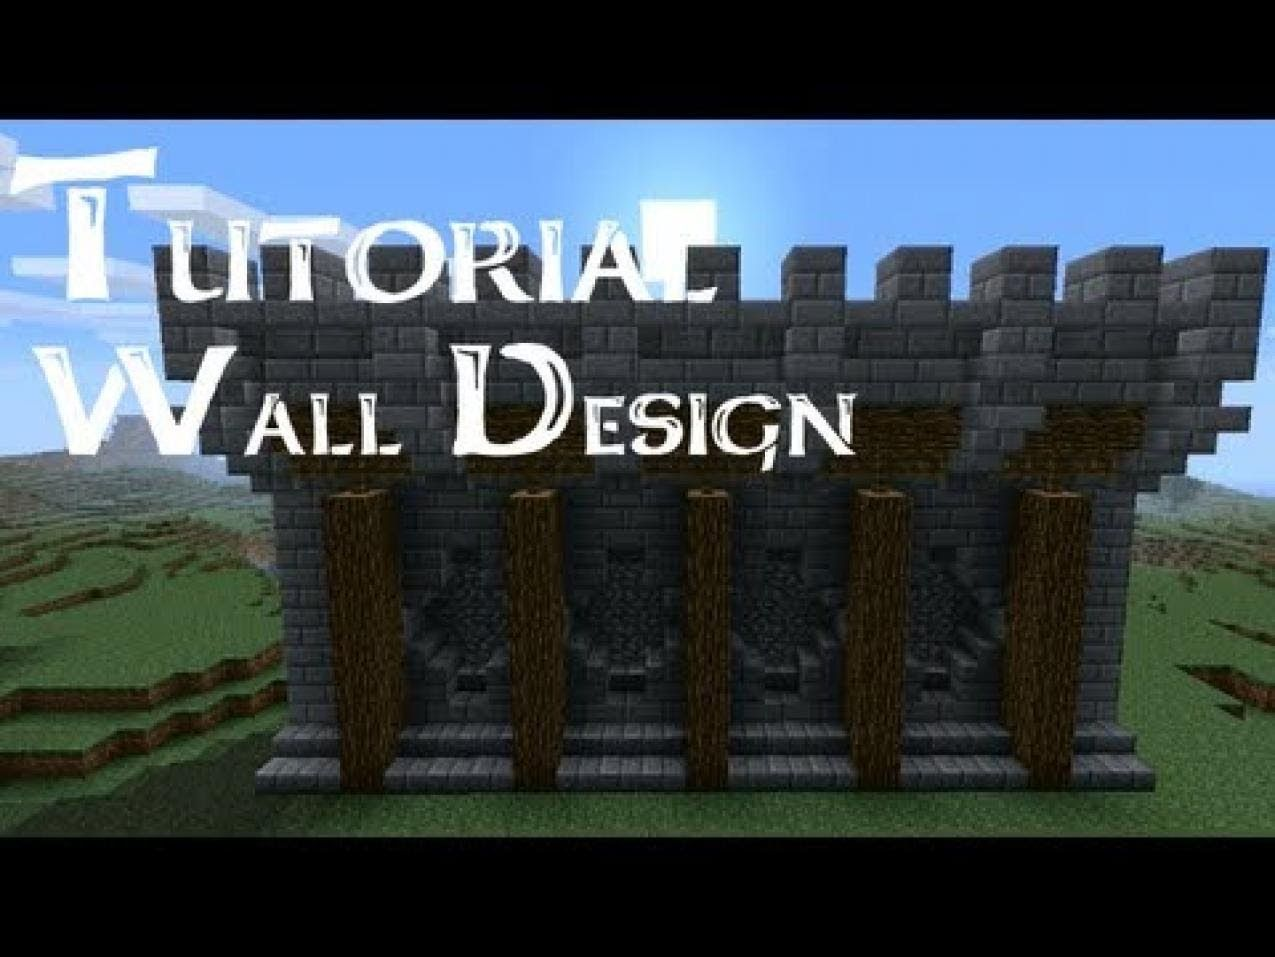 A Tutorial About New Wall Design Can Be Used For Castles Or As Citywalls No Bloopers P If You Have Sugg